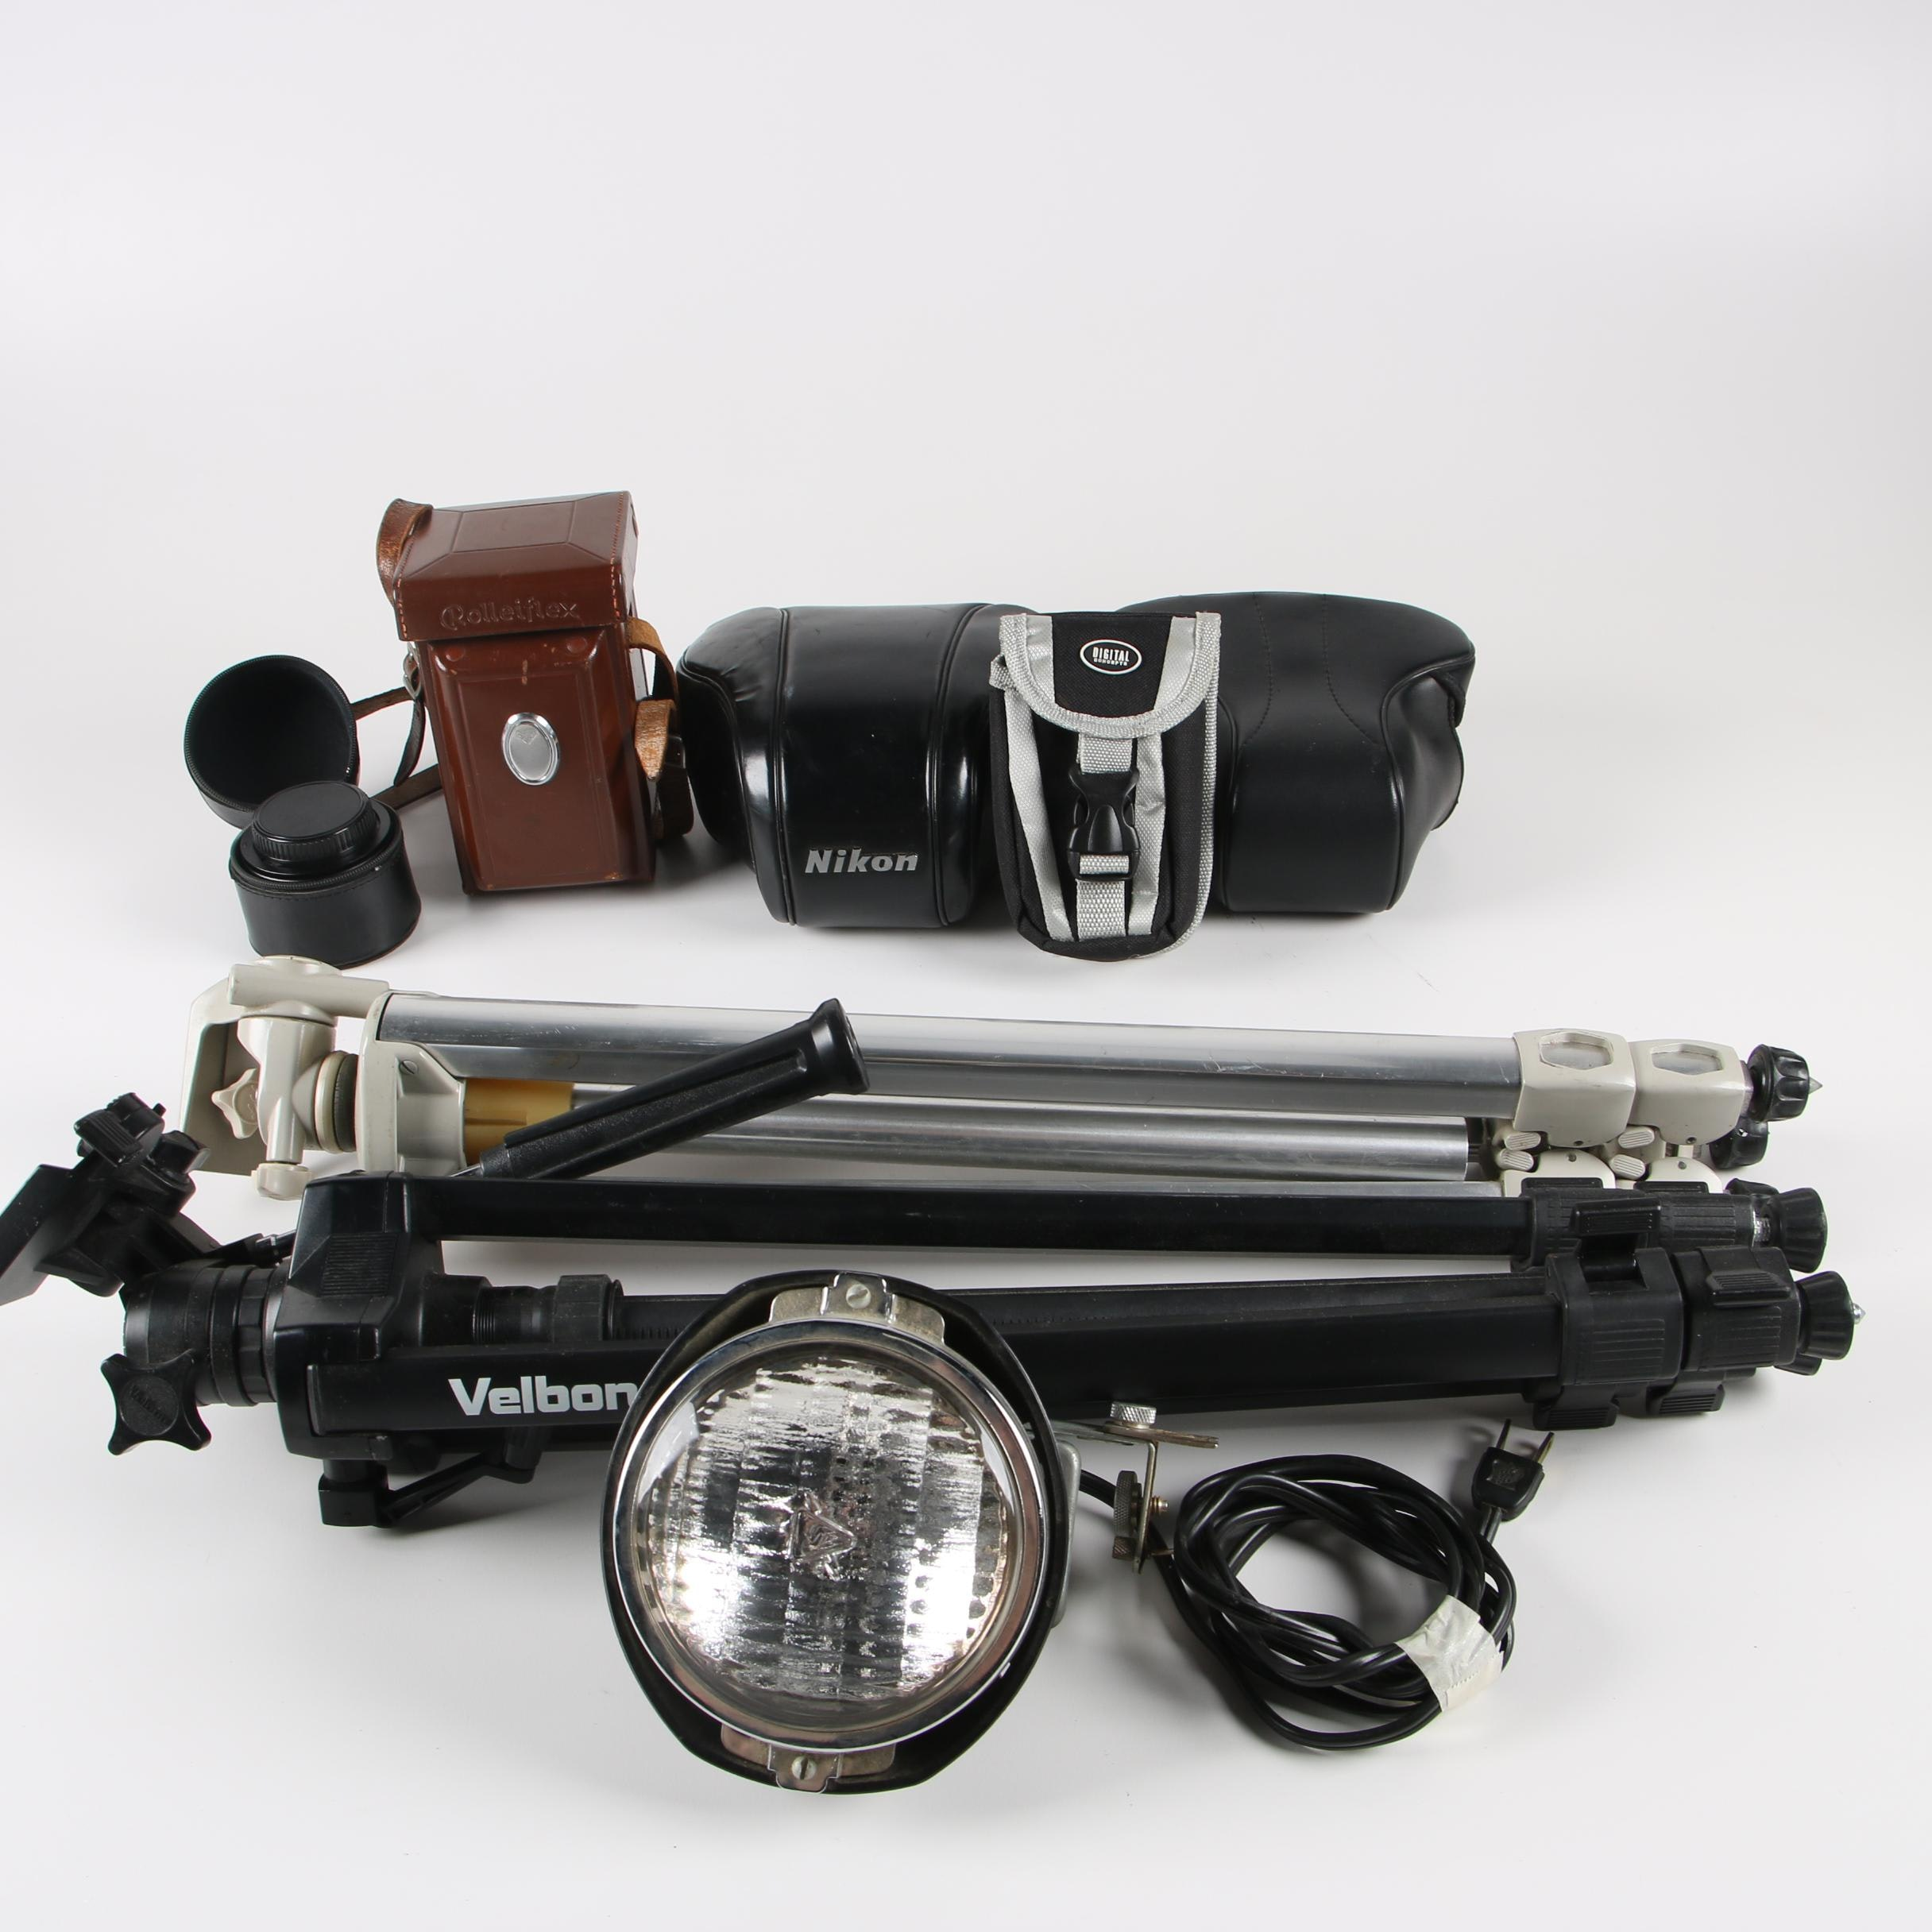 Vintage Tripods, Acme-Lite Super 8 Top-Mount Light, and Other Camera Accessories